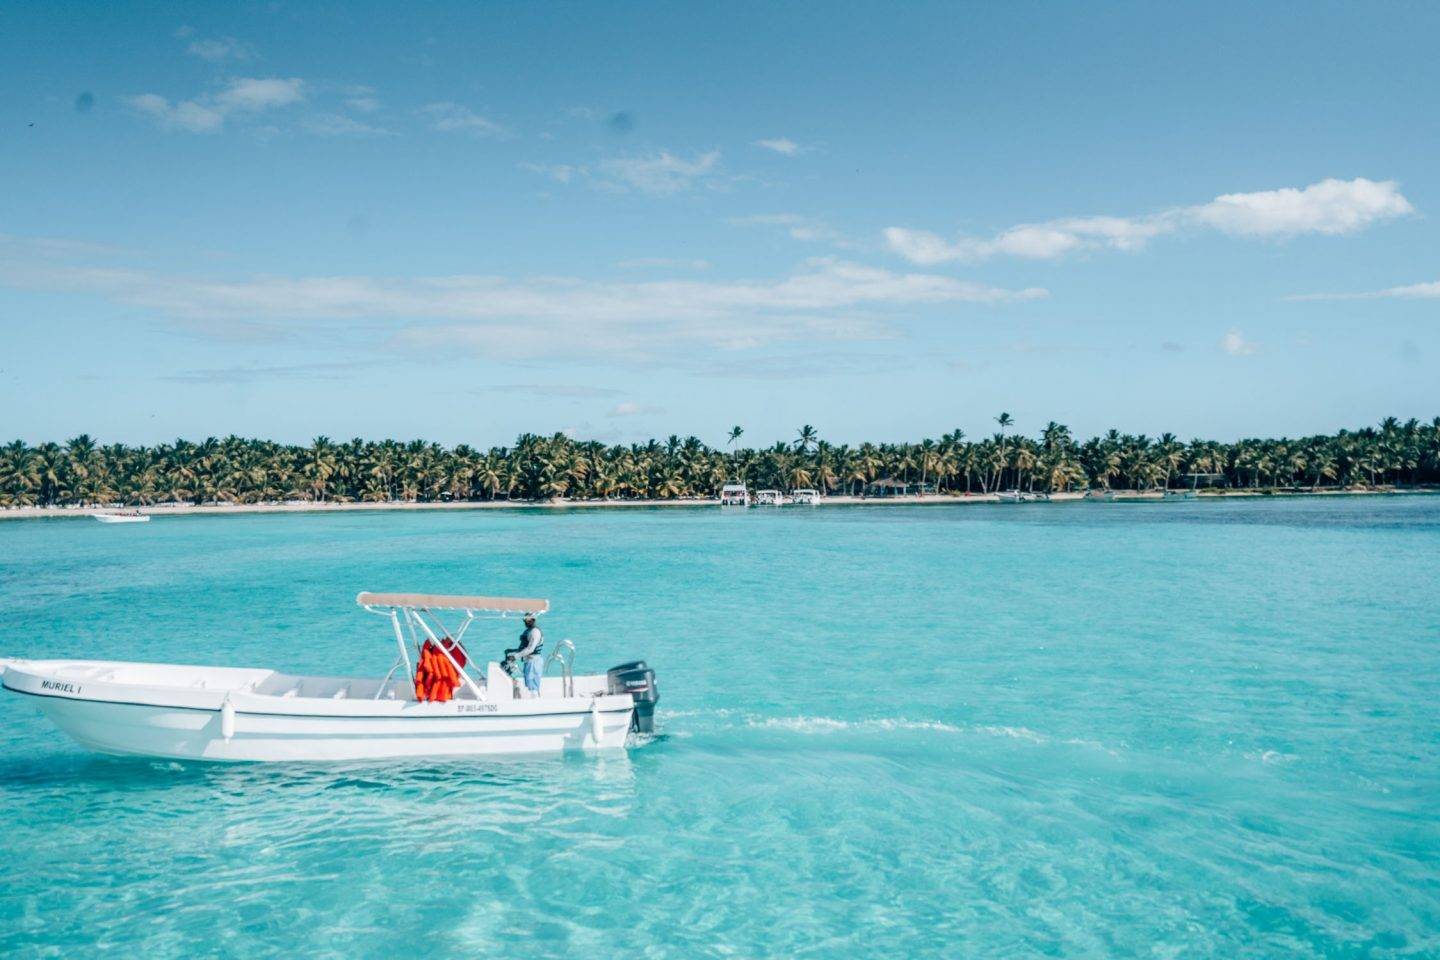 Finding the best things to do in Punta Cana- where to stay, what to eat, and how to get the most out your time there- including where to find the best beaches in Dominican Republic.